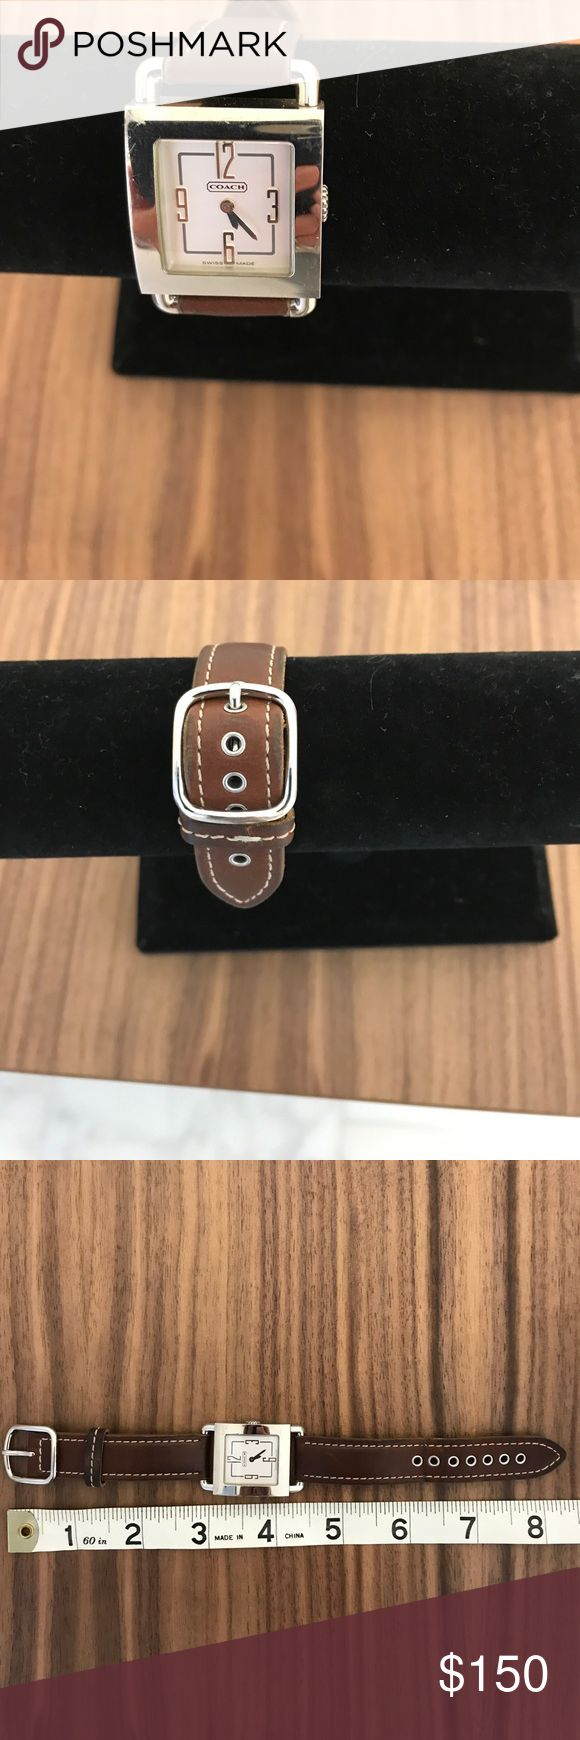 Coach Watch Timeless coach watch silver with the brown leather band. Works beautifully. Coach Accessories Watches